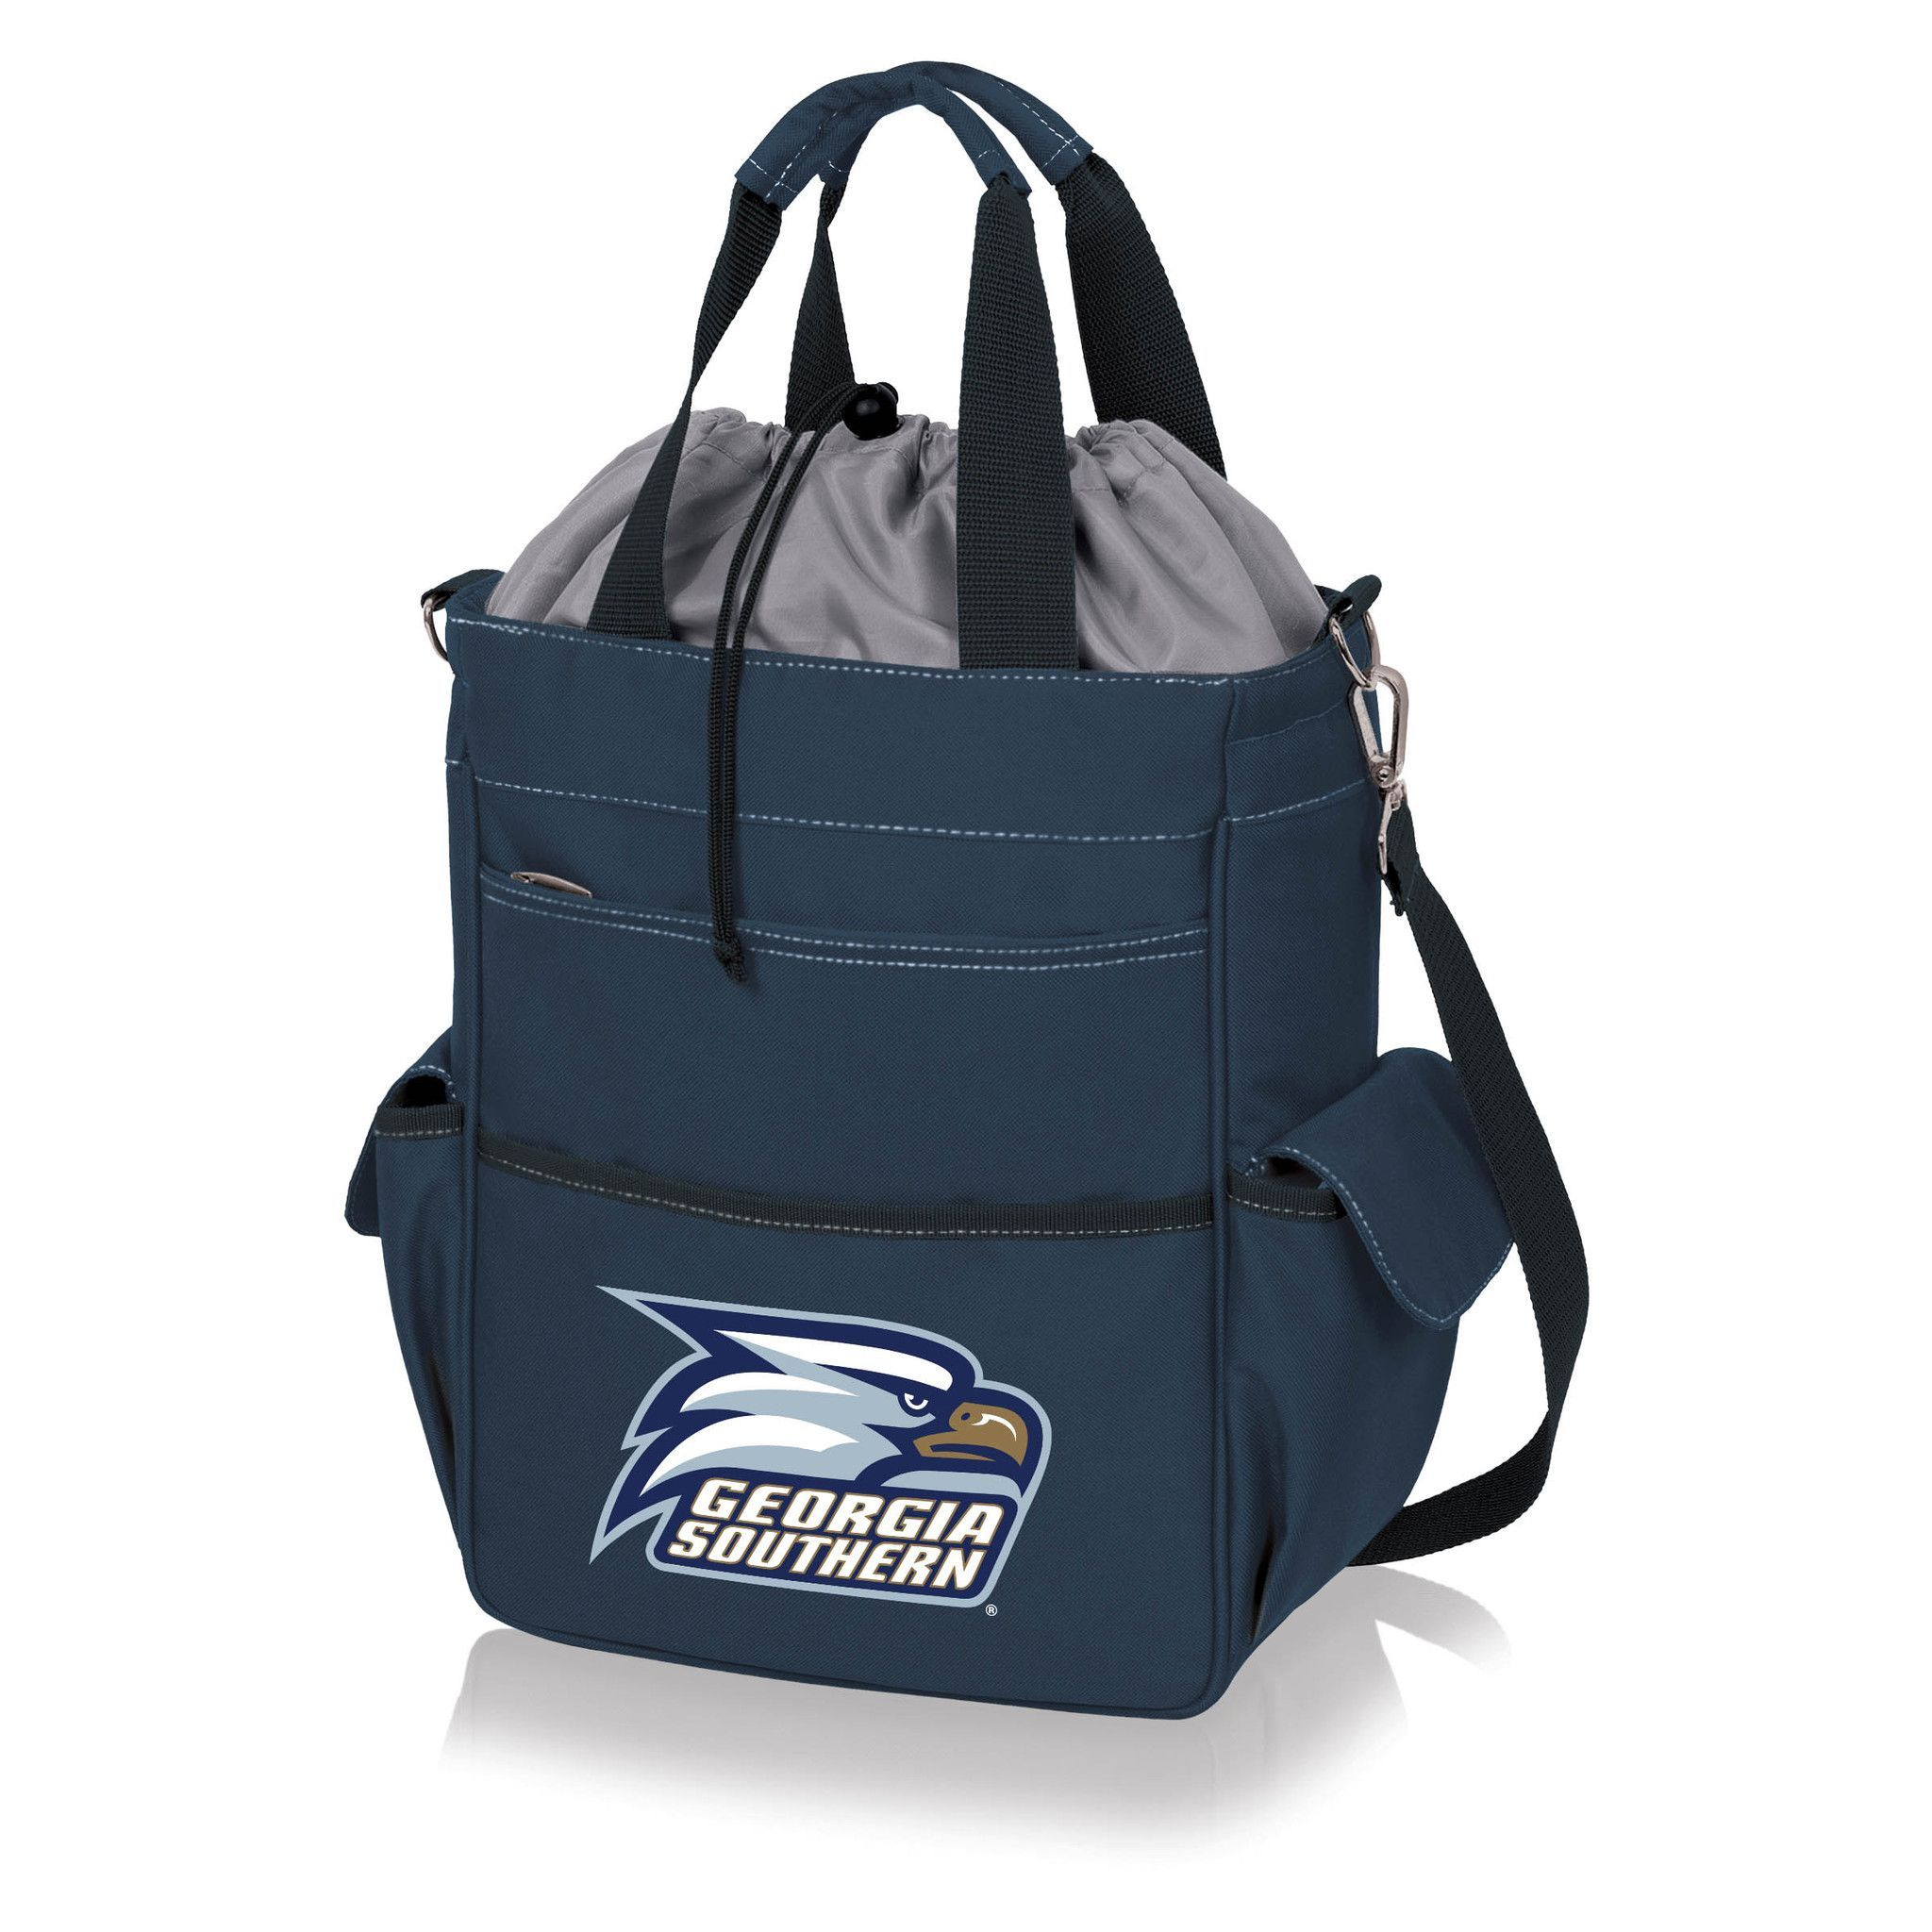 Georgia Southern Eagles Water Resistant Tote